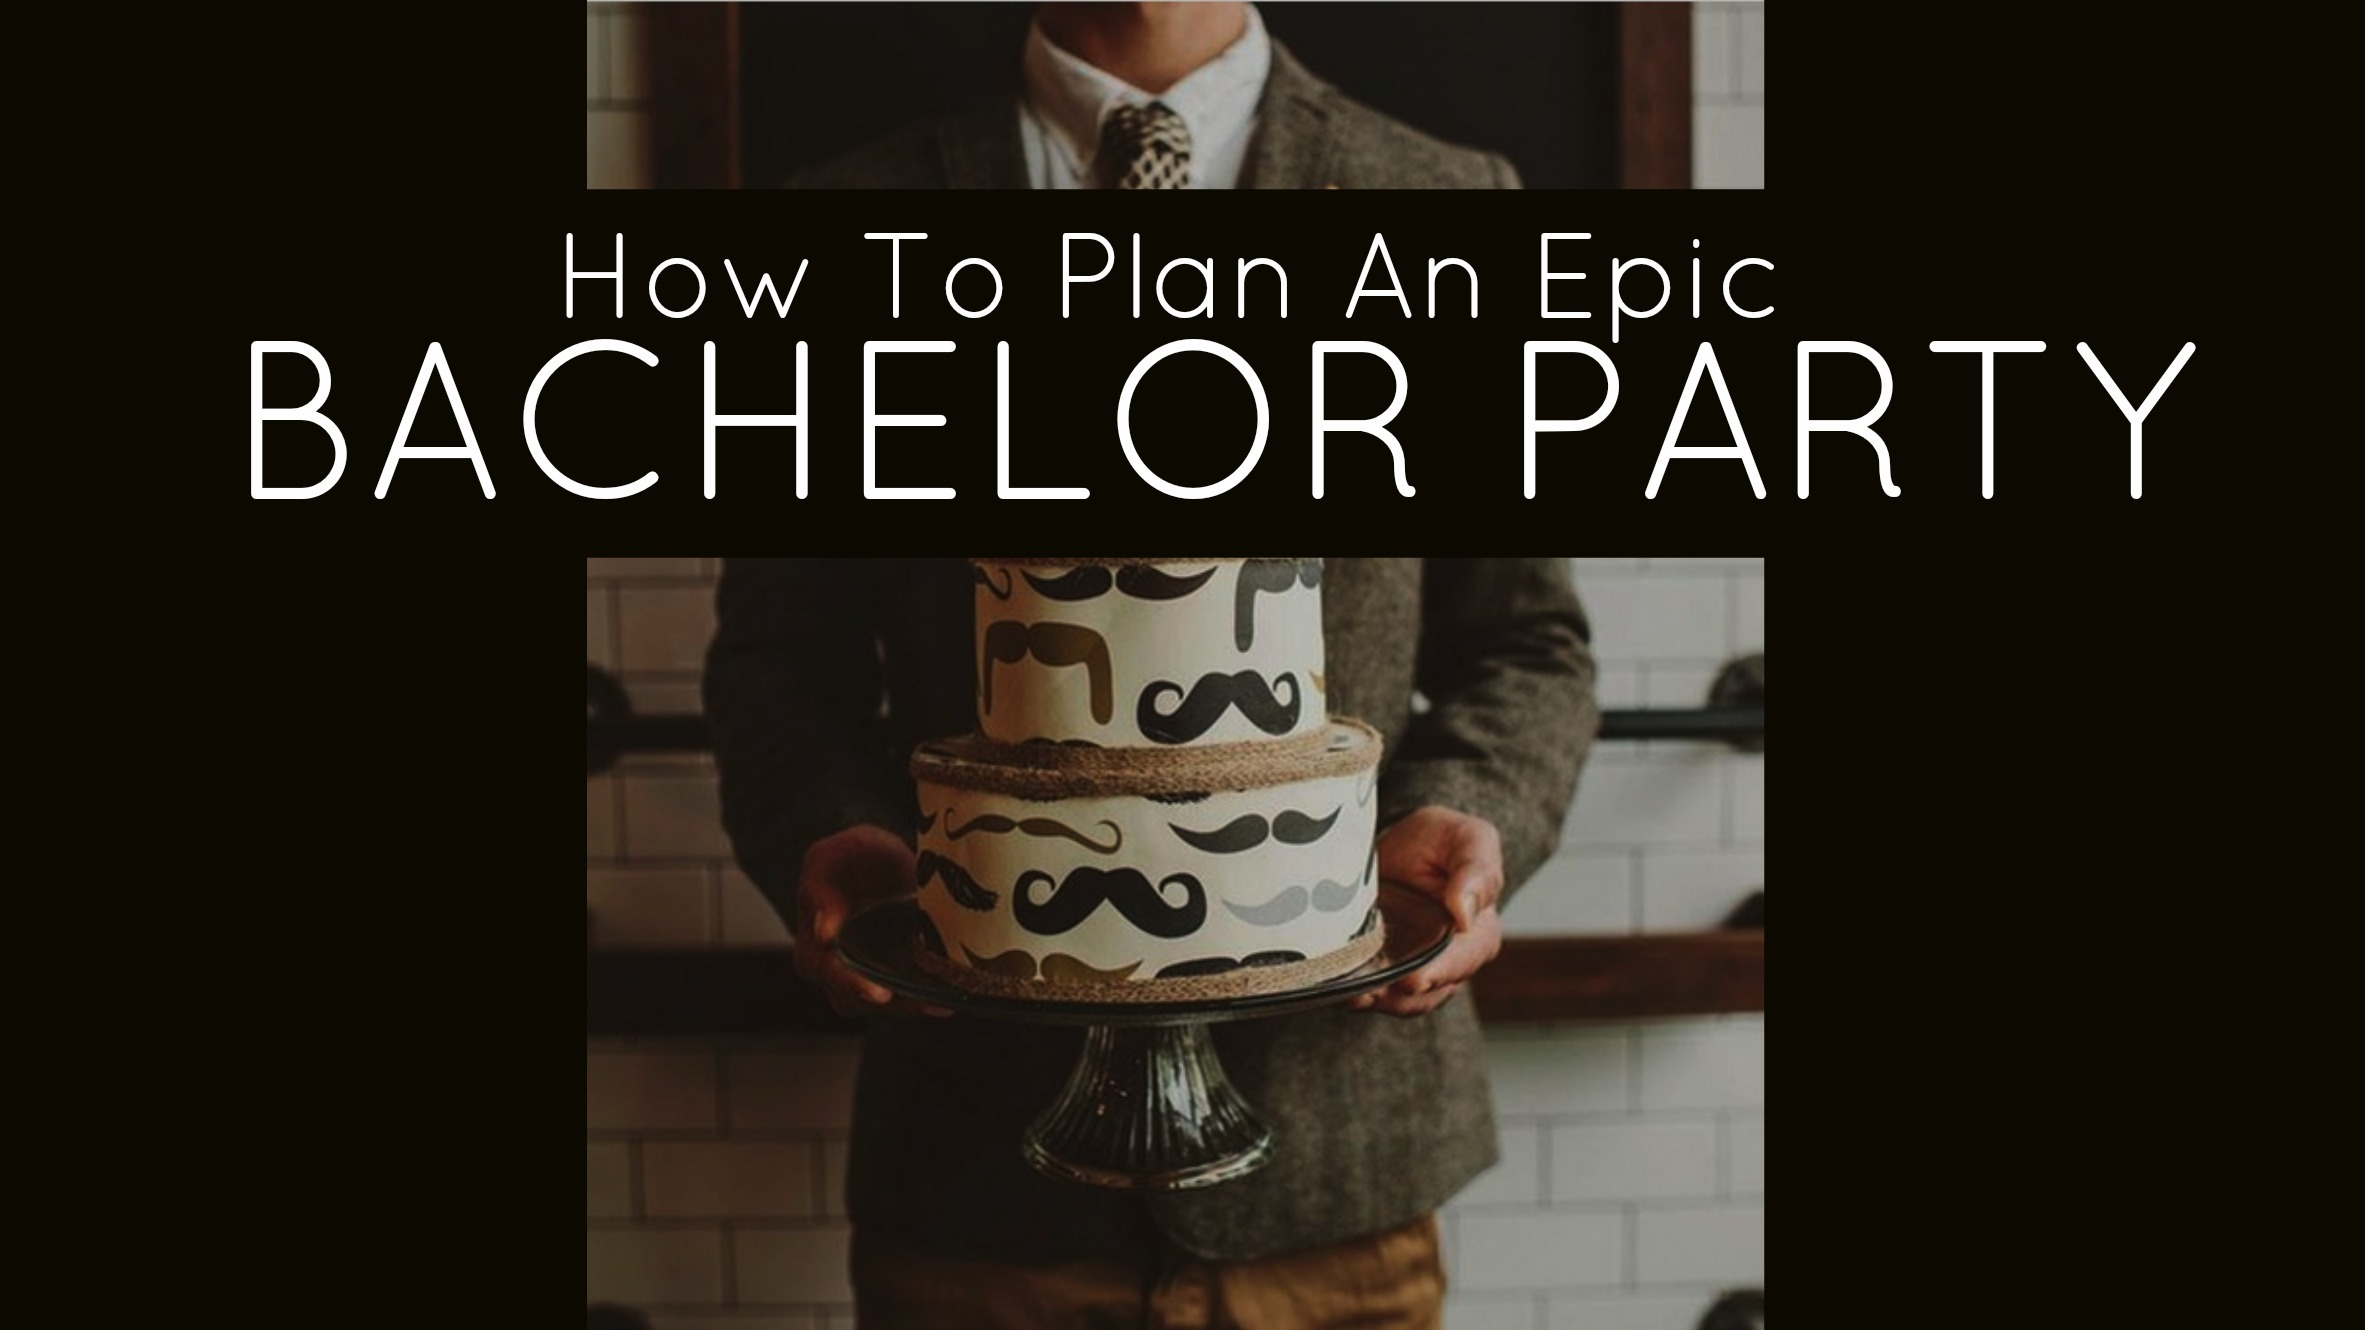 Super Fun Bachelor Party Ideas That Don't Involve Strippers